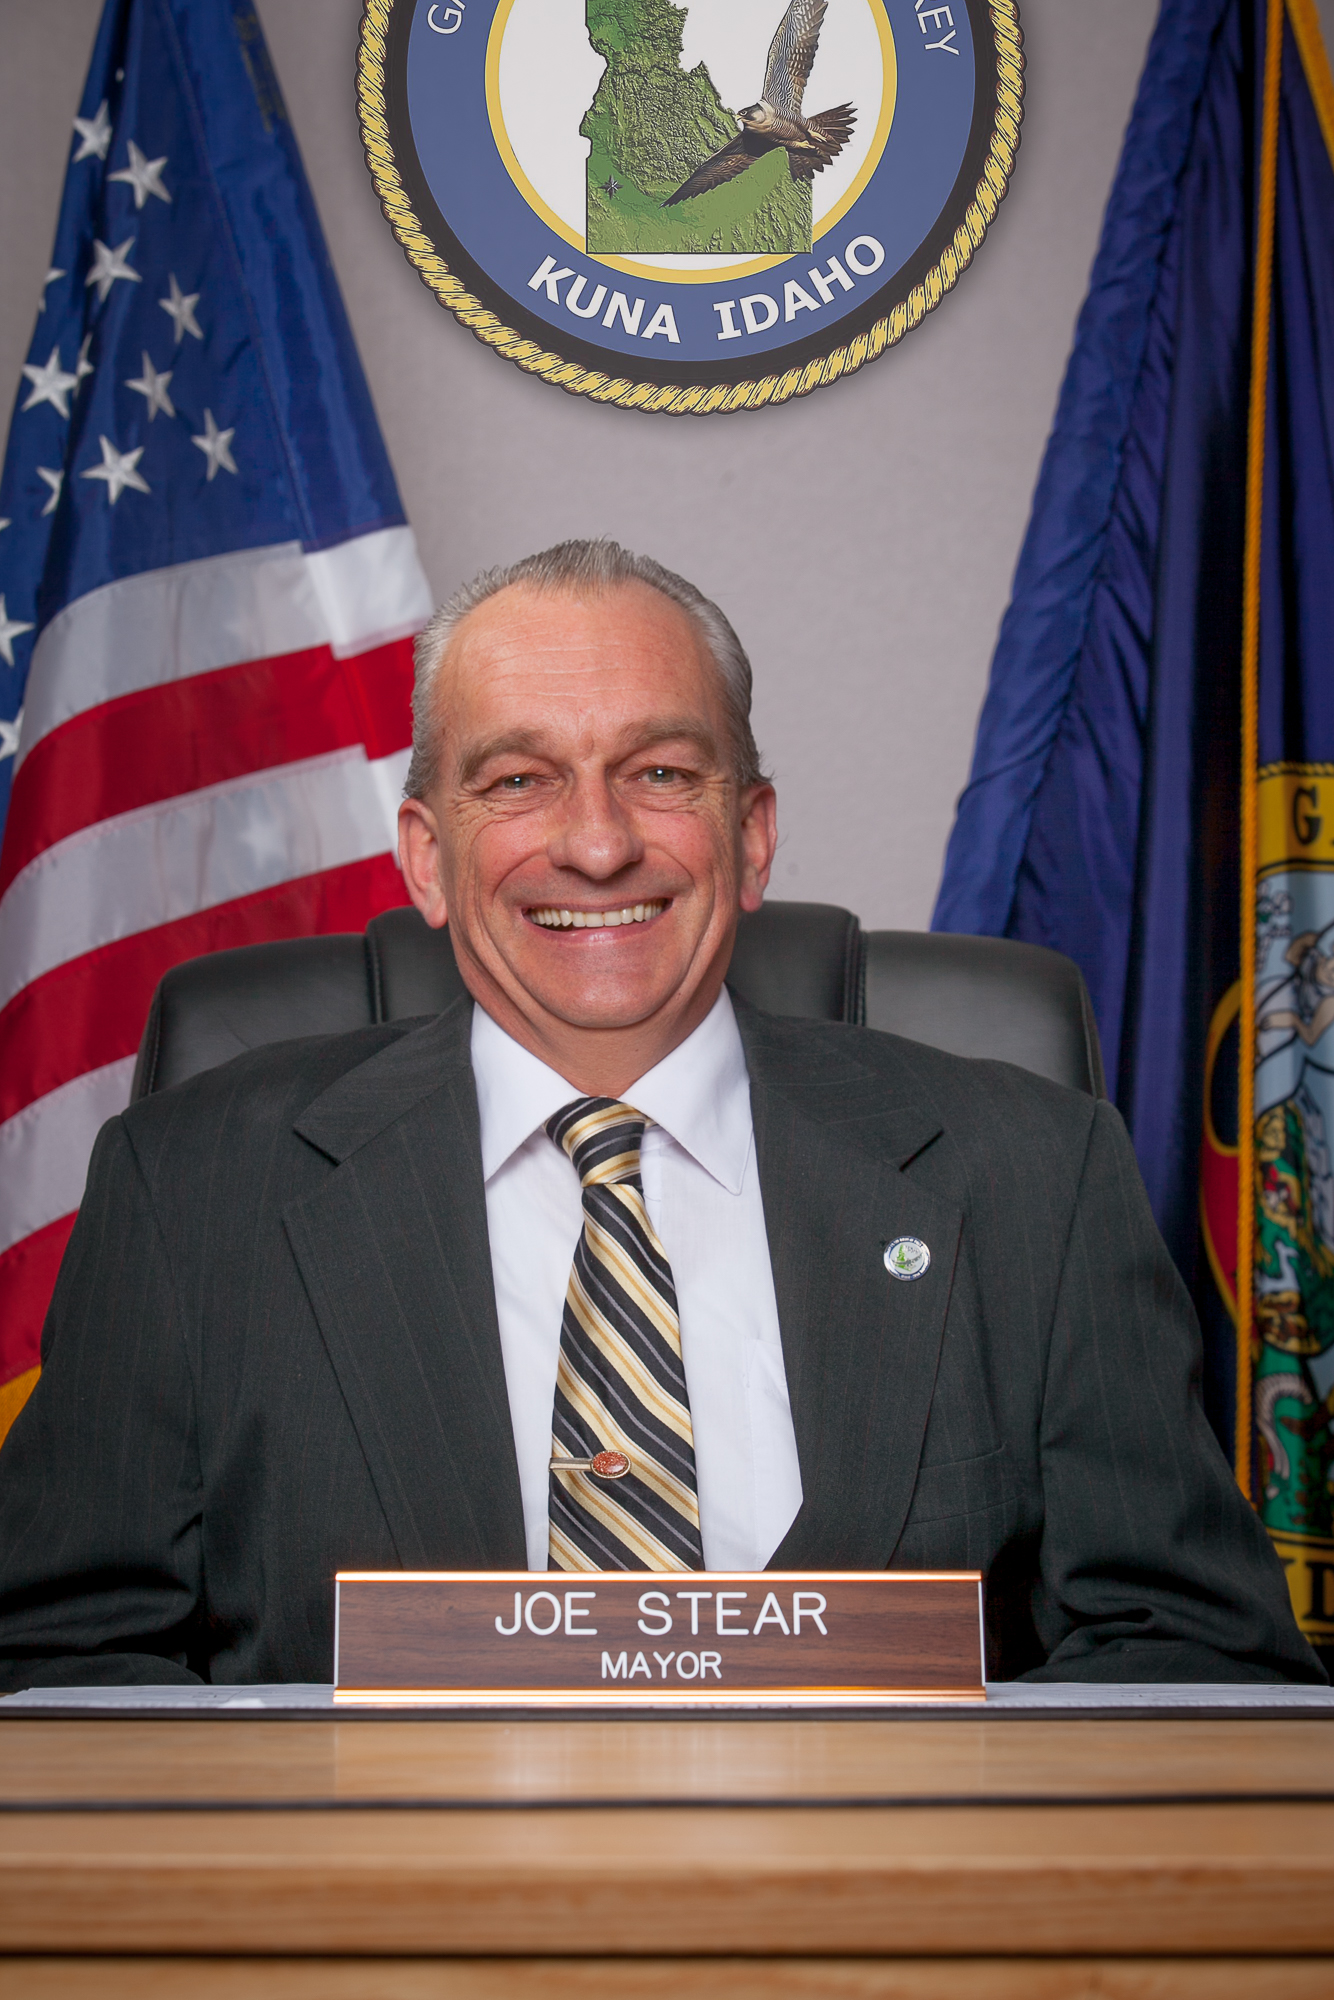 Joe Stear Mayor.jpg